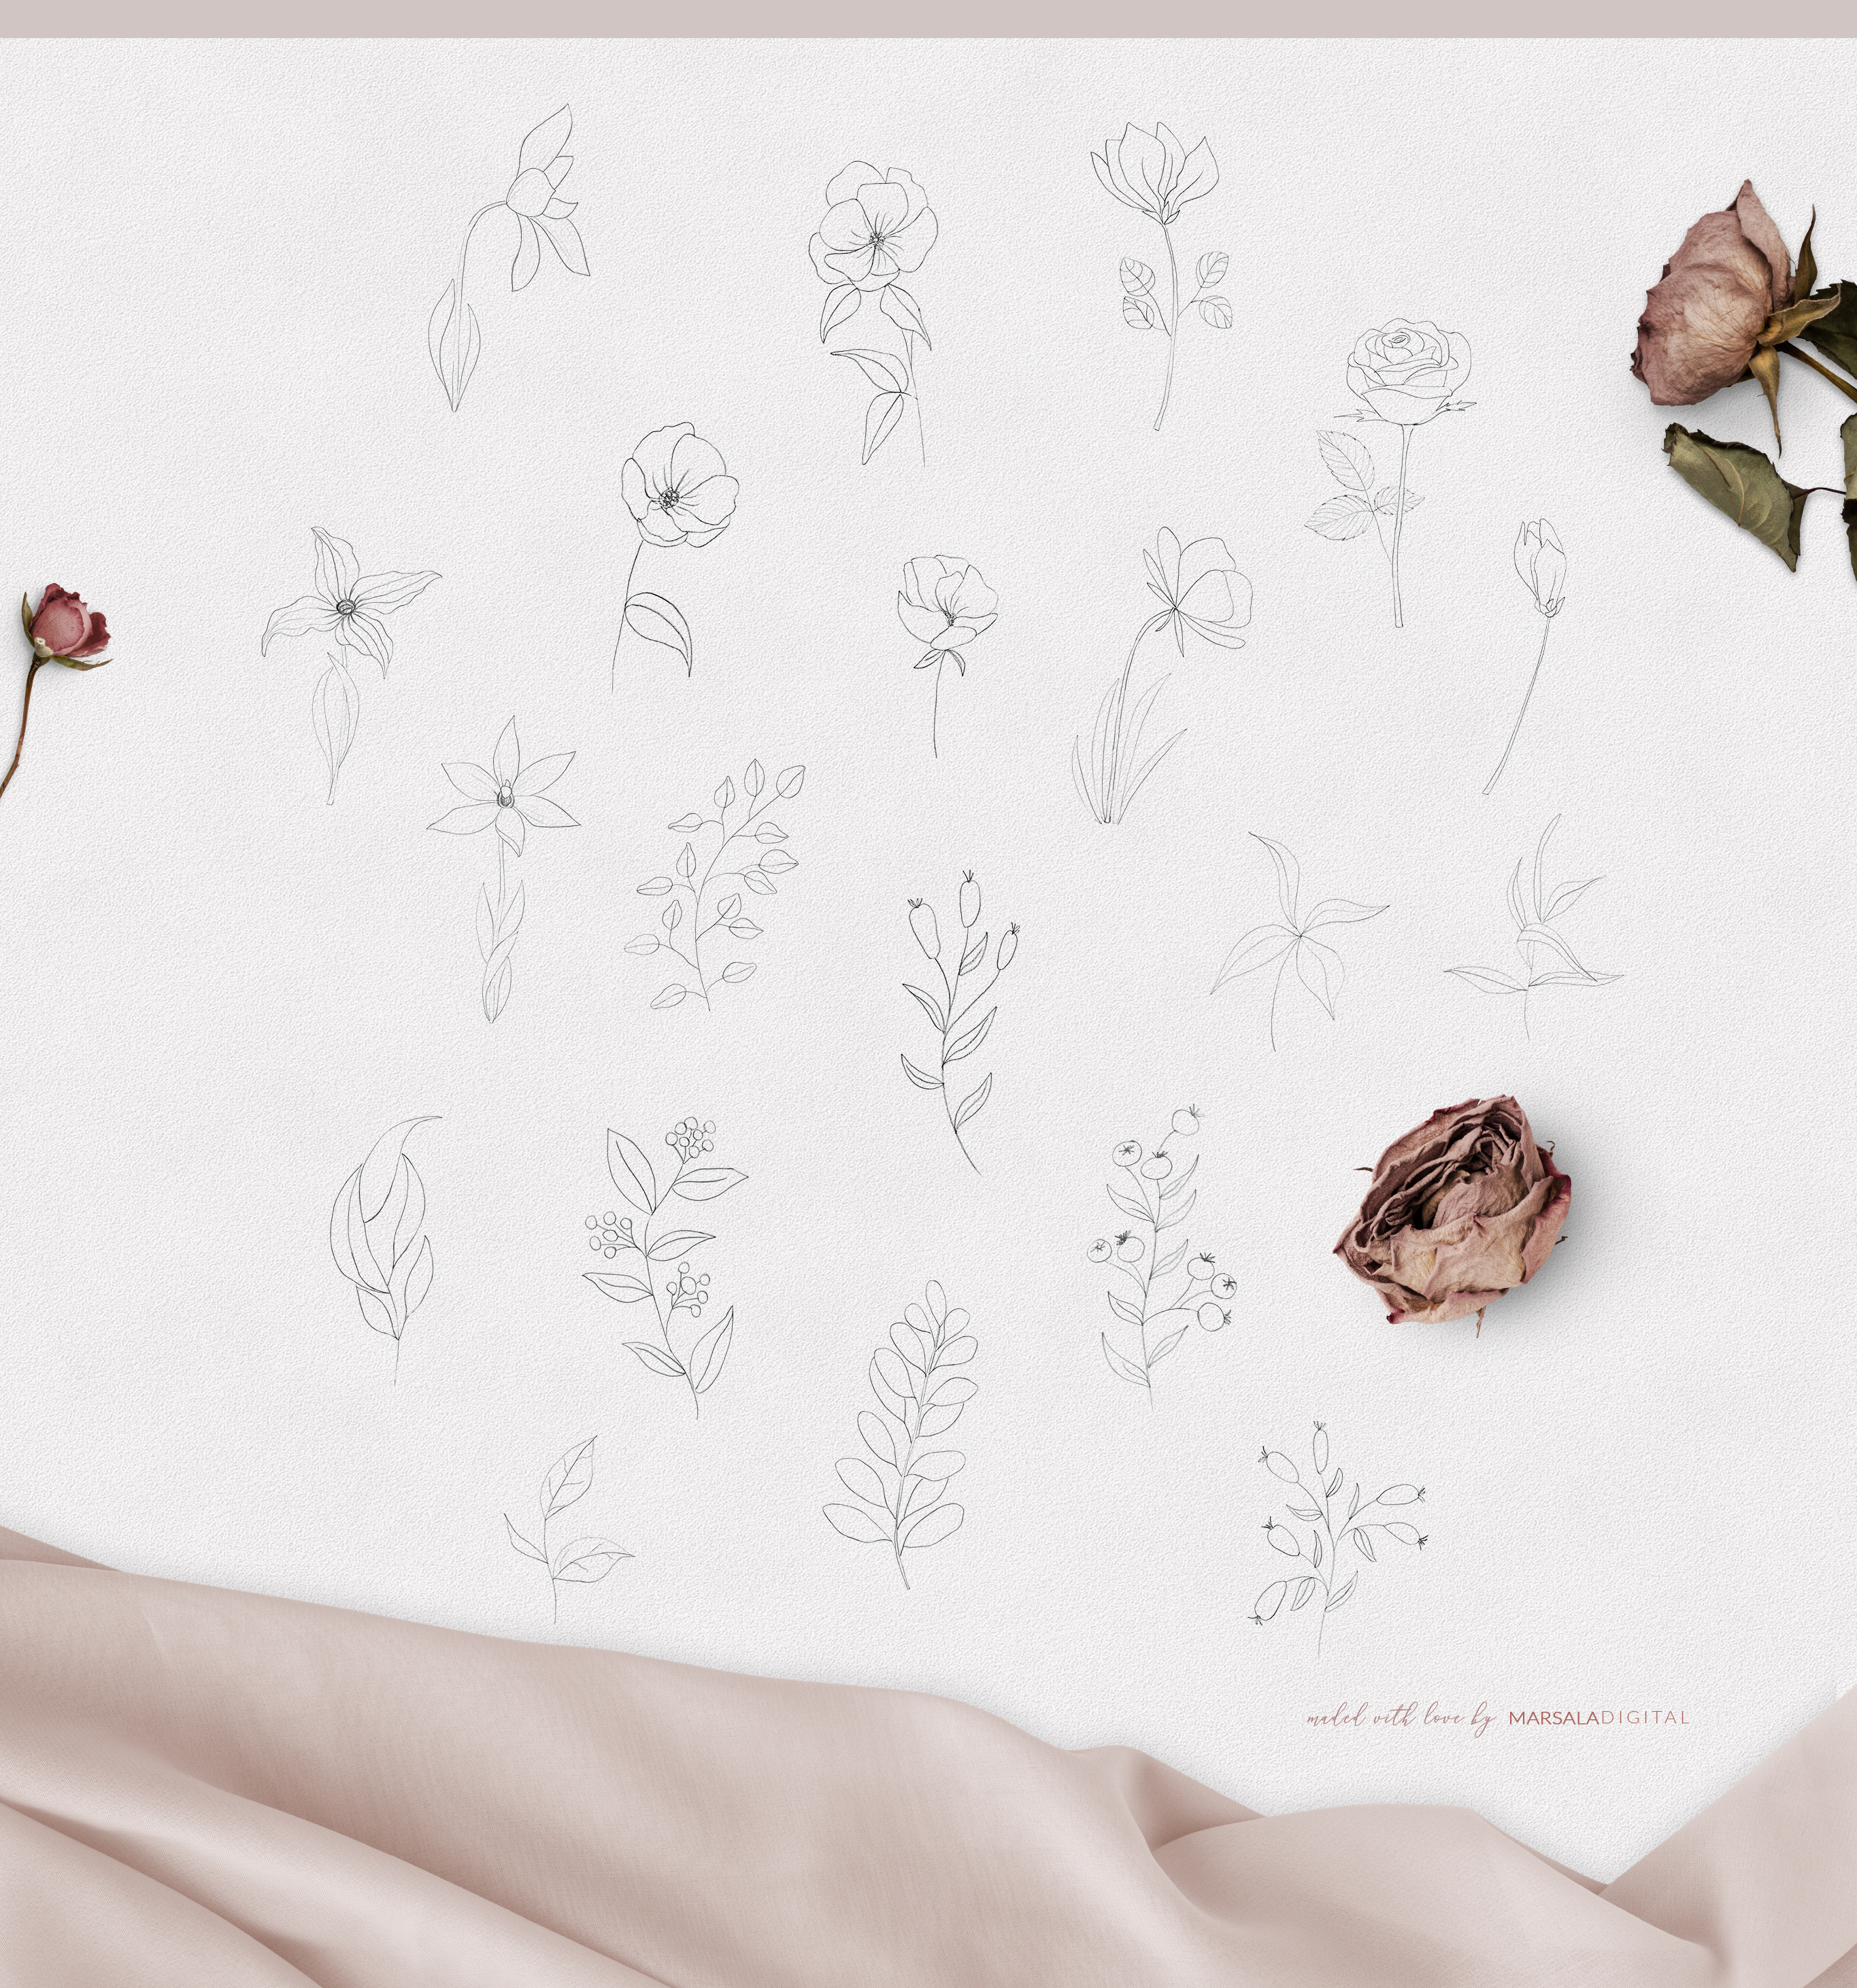 Fine Art Pencil Sketch Florals, Gold Brush Strokes, Textures example image 8